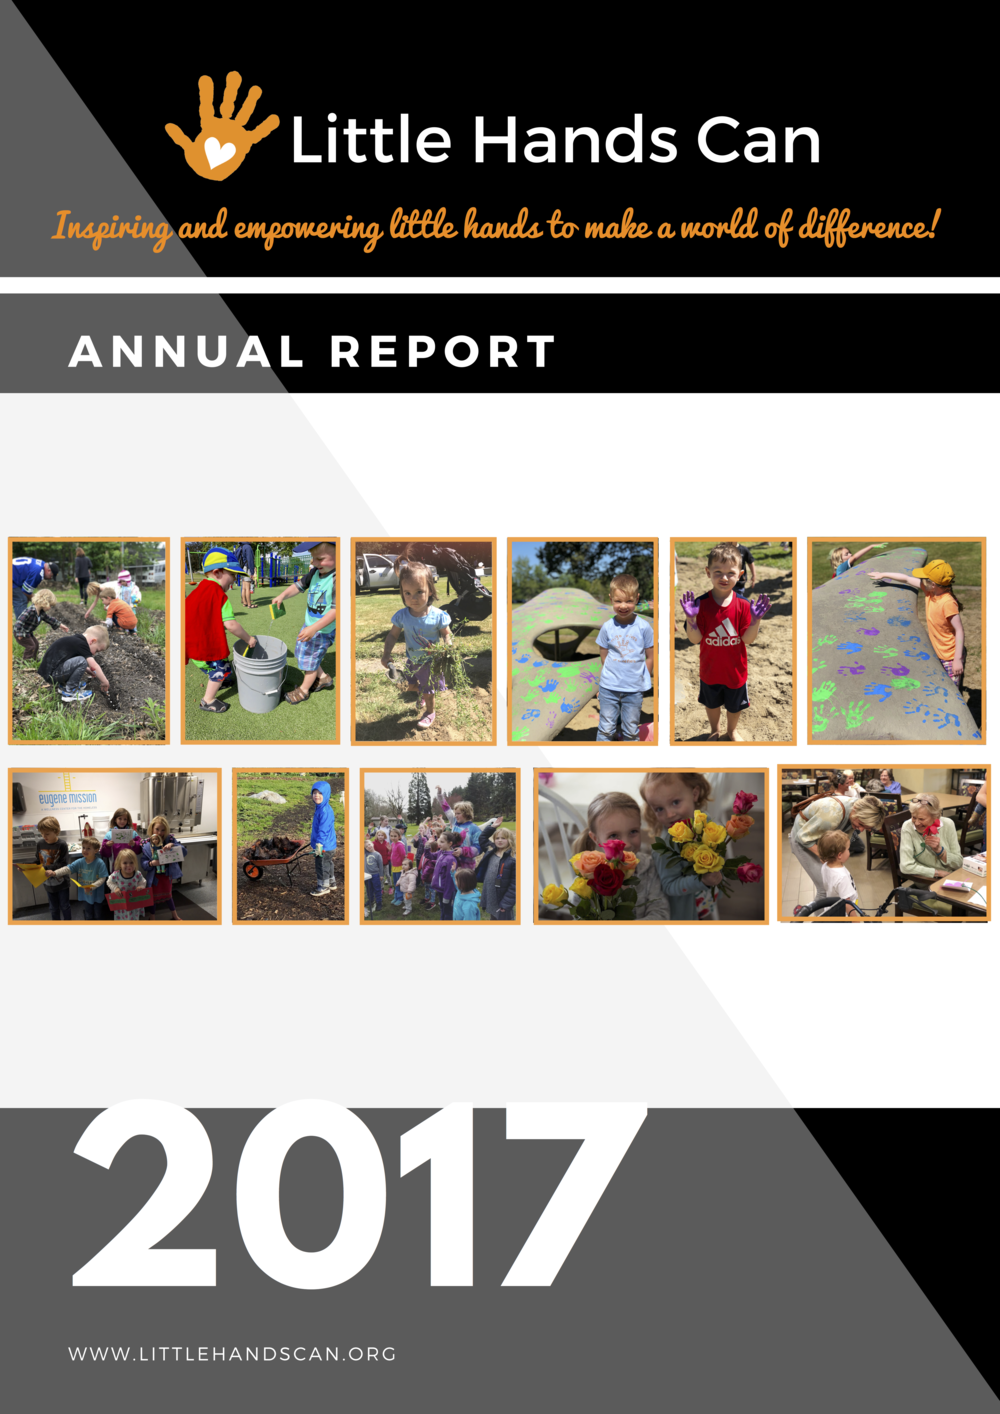 Little Hands Can Annual Report image-1 (dragged).png